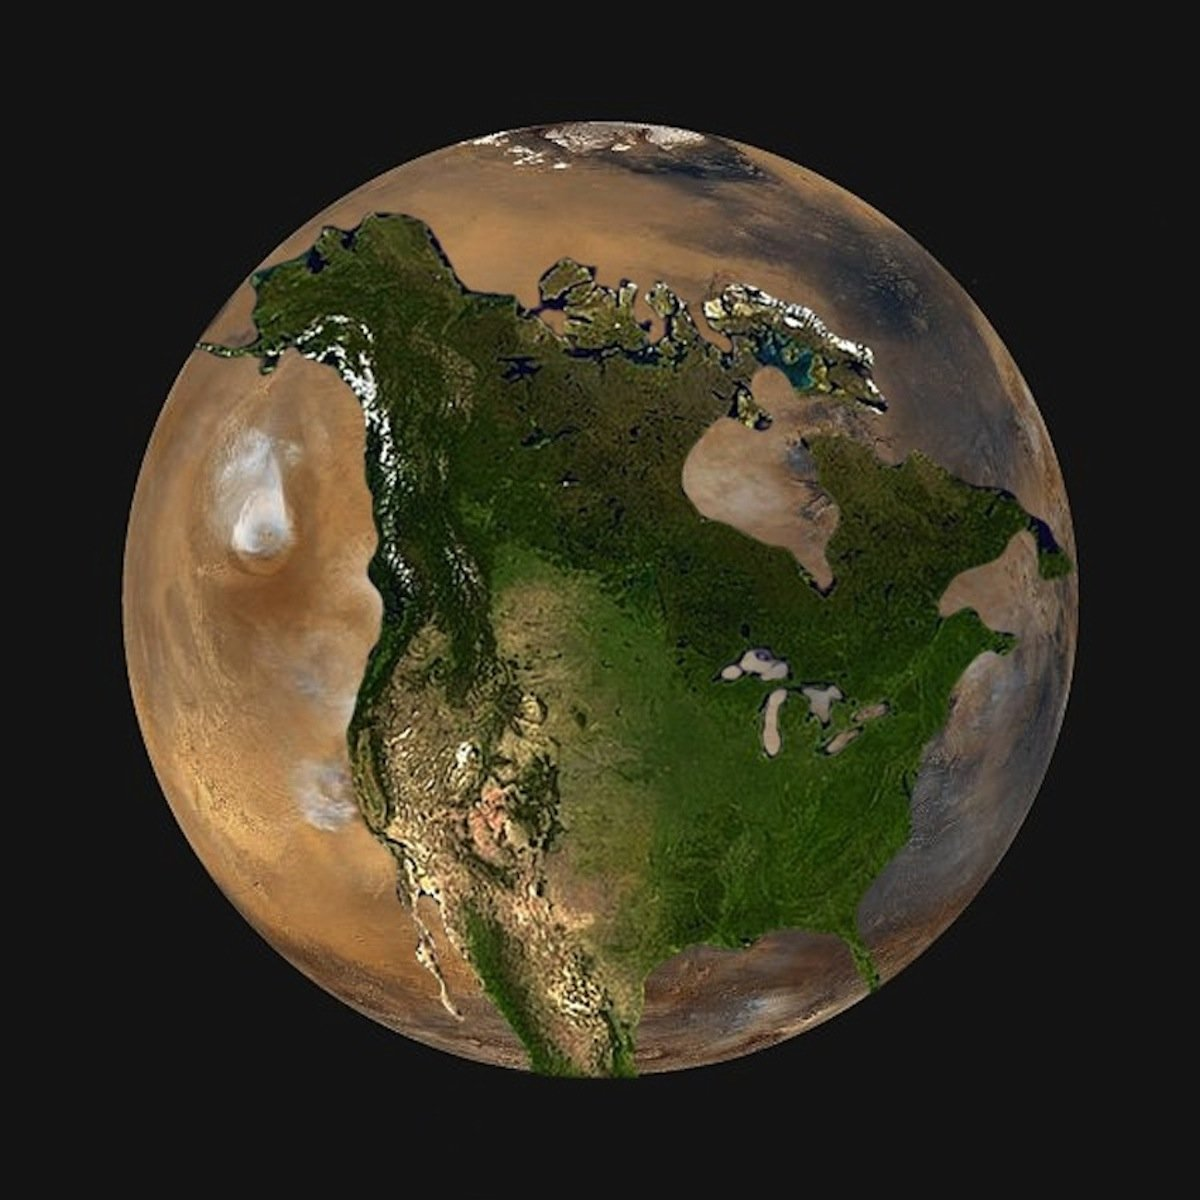 mars-could-become-a-second-home-for-humanity-but-its-only-a-little-more-than-half-the-size-of-earth-north-america-for-example-just-barely-fits-on-one-of-mars-hemispheres